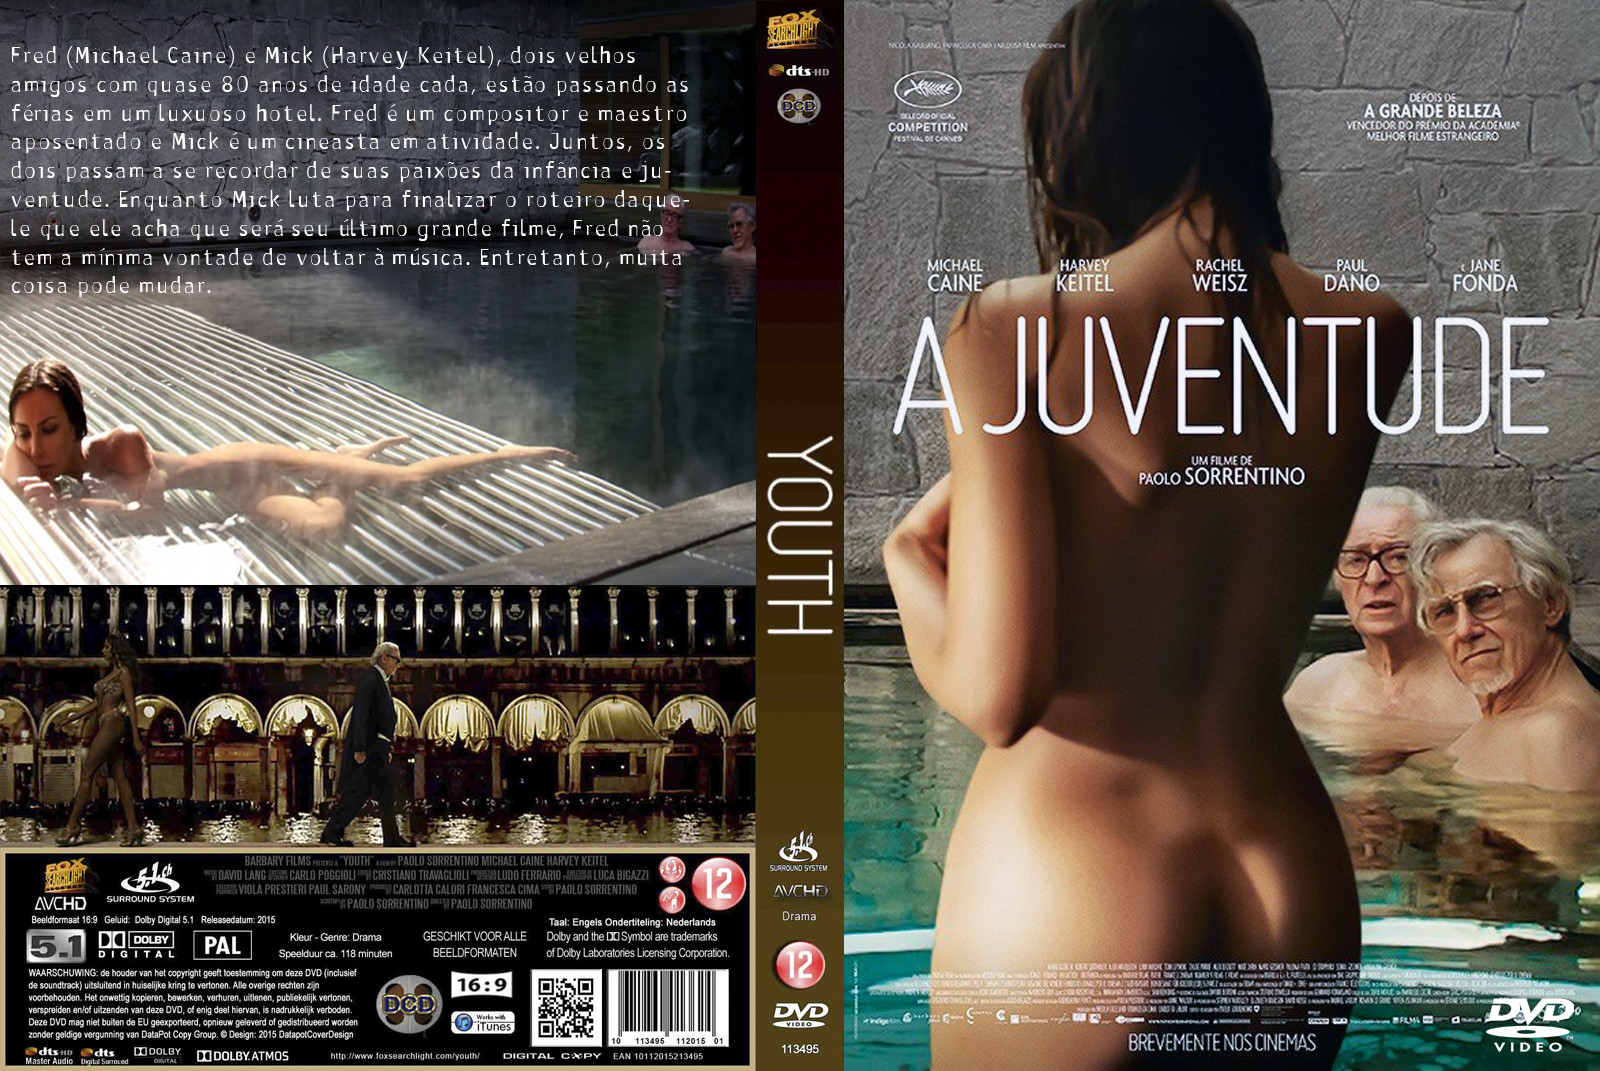 Download A Juventude DVD-R Download A Juventude DVD-R A 2BJuventude 2B  2BXANDAODOWNLOAD